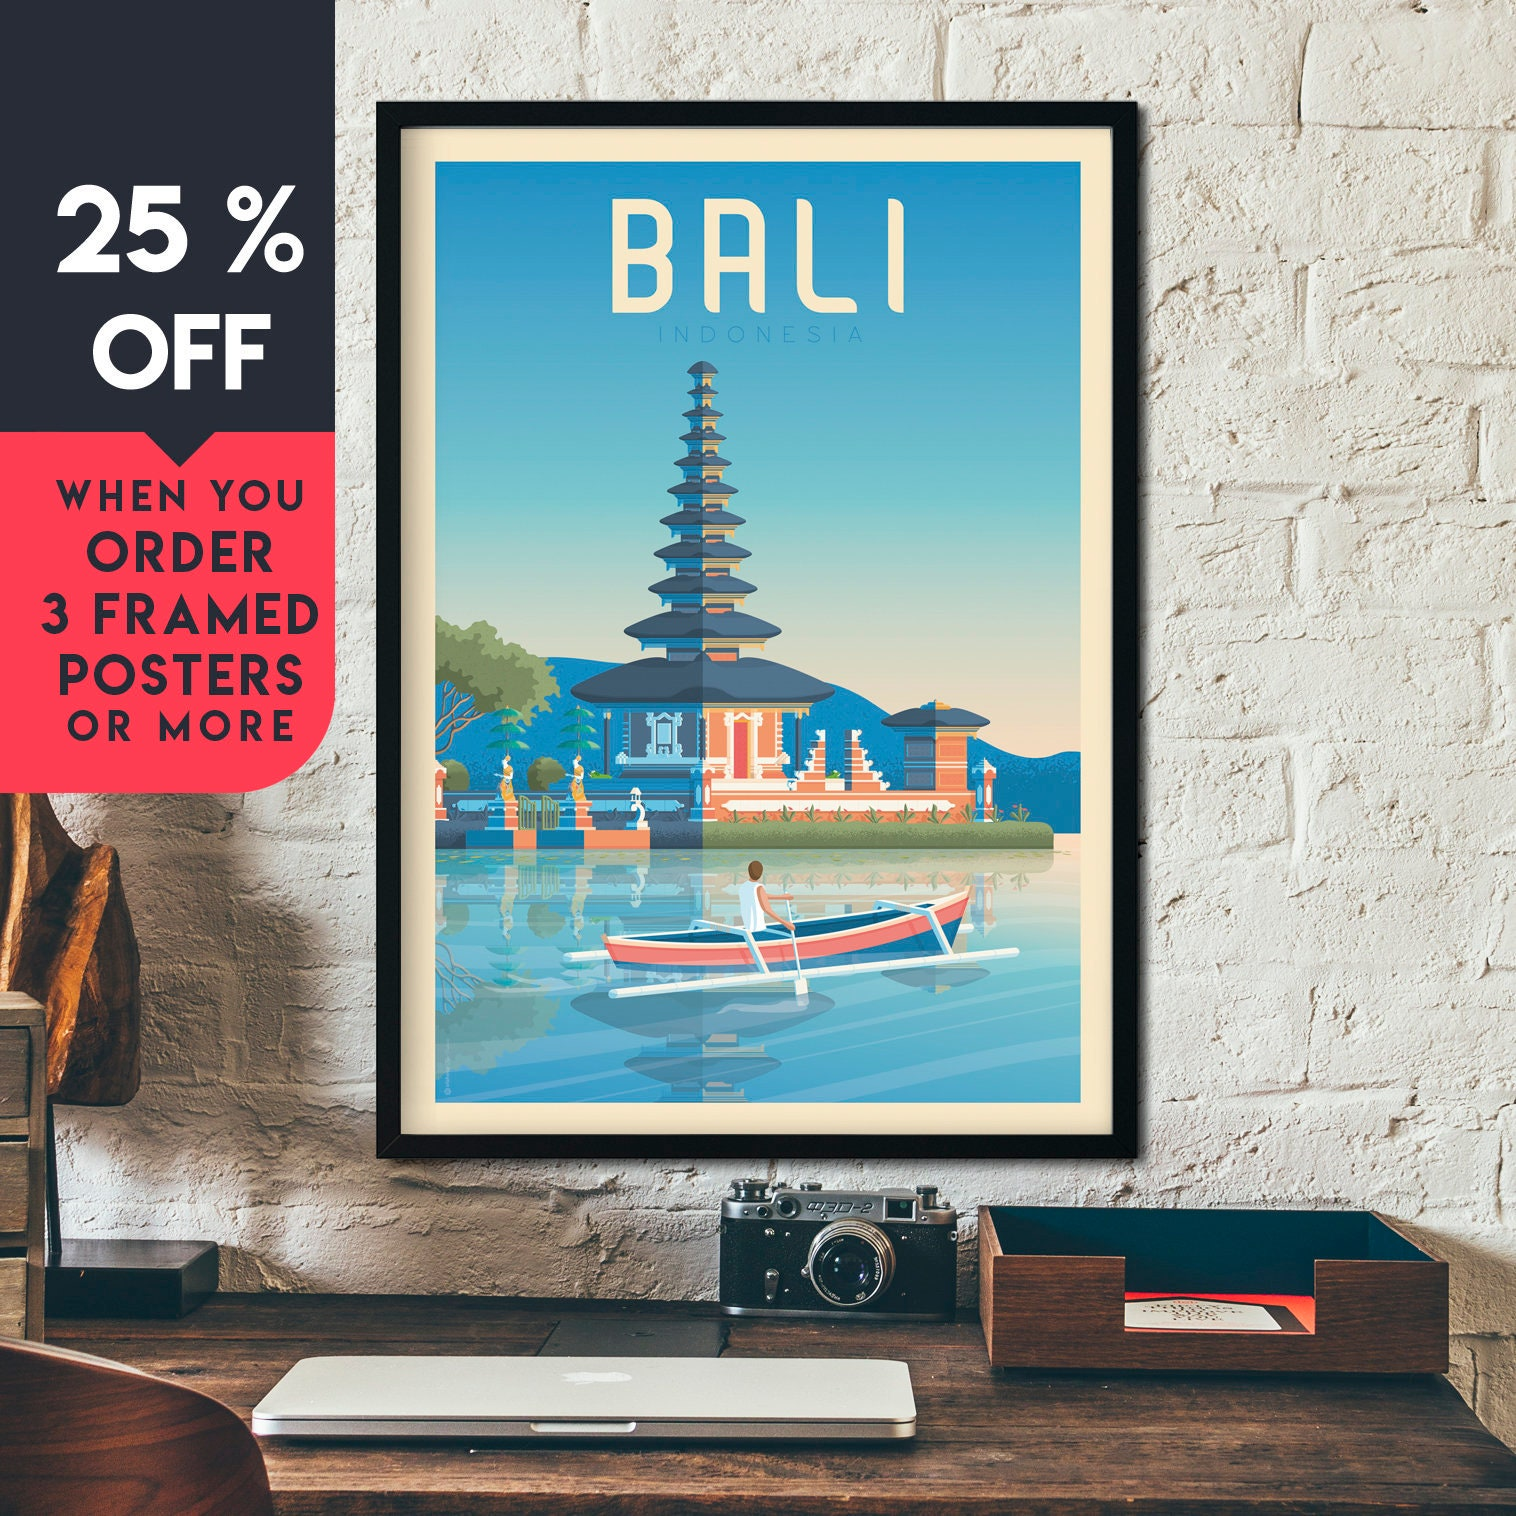 Bali Indonesia Asia Vintage Travel Poster Framed Wall Art